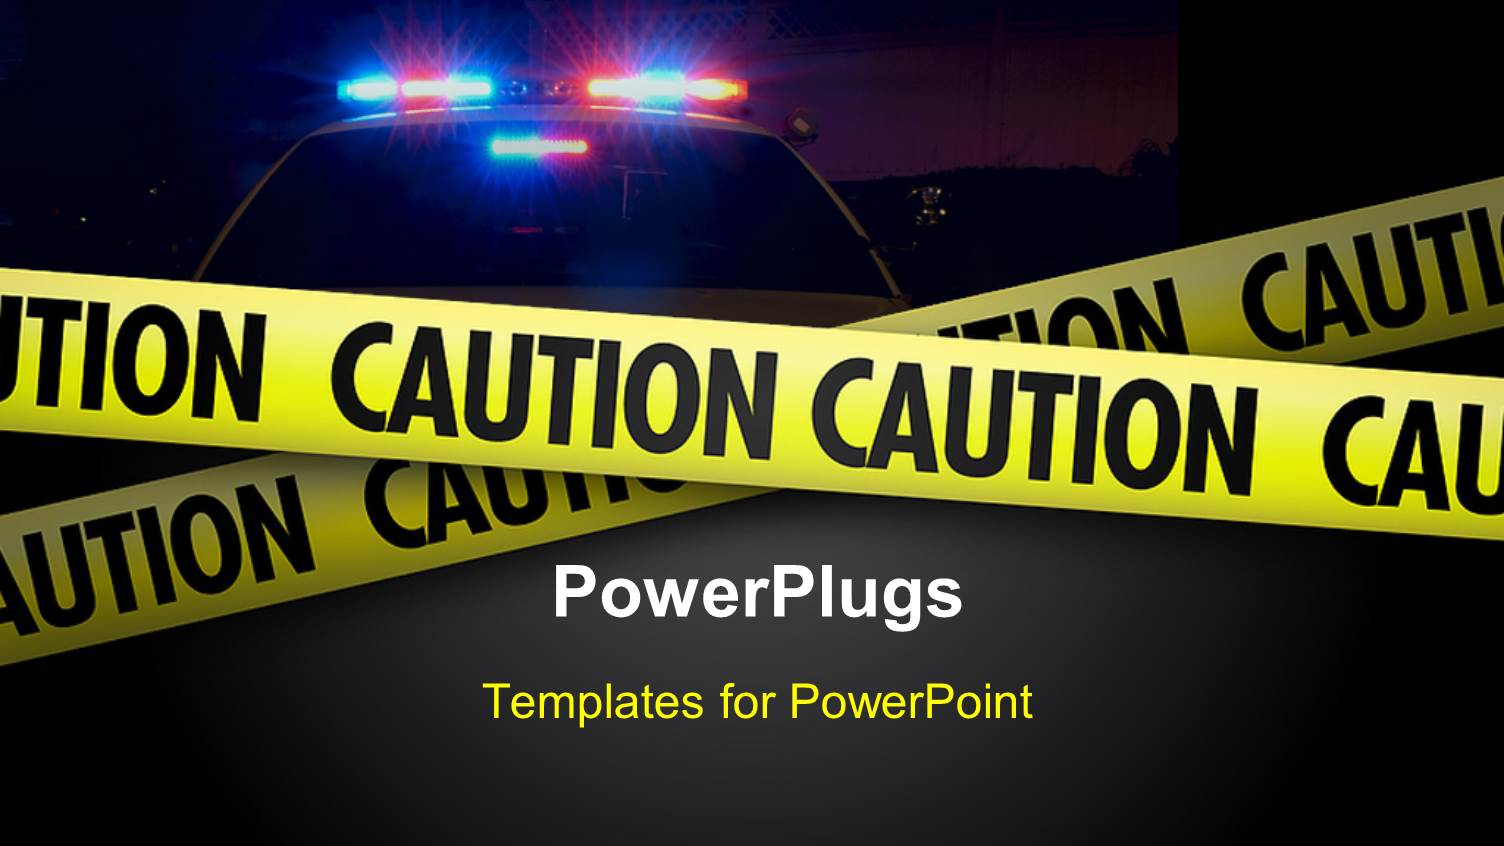 Crime powerpoint templates crystalgraphics powerplugs powerpoint template with a representation of a crime scene displaying yellow caution tape toneelgroepblik Choice Image